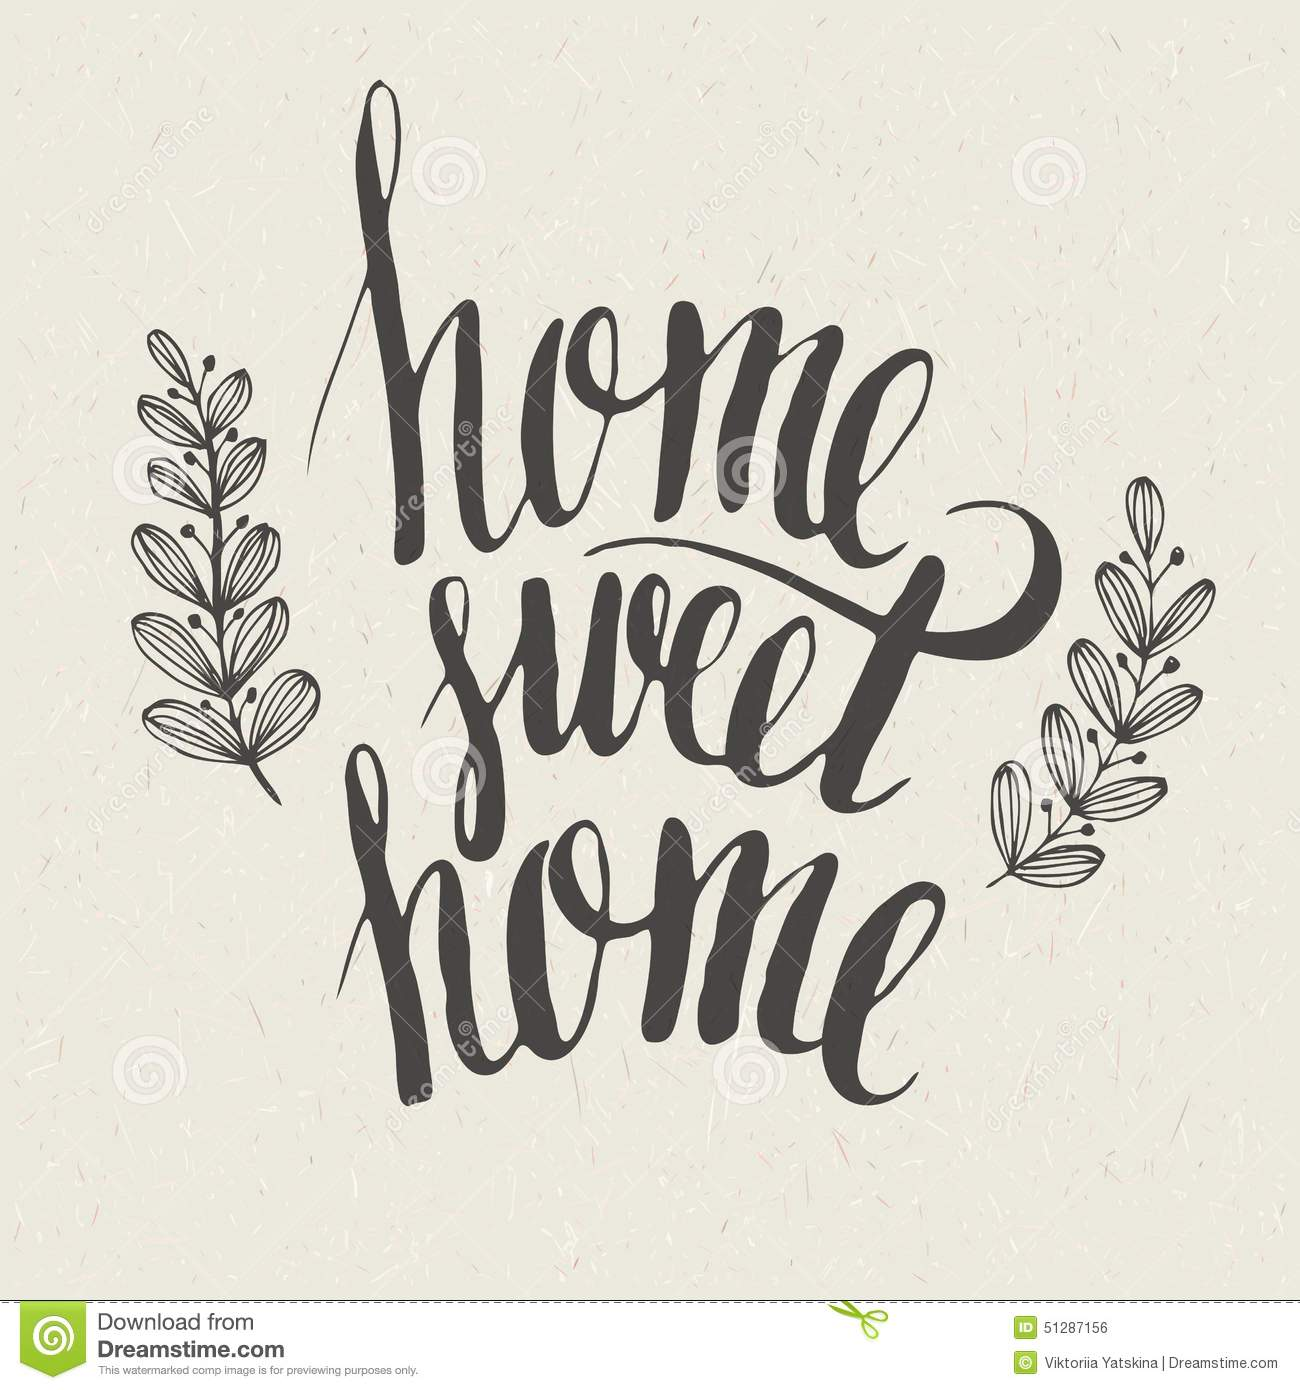 Sweet Home Lettering Stock Vector  Image 51287156. Security Camera Signs Of Stroke. Efficacy Signs Of Stroke. Firewatch Murals. Essos Banners. Old Time Decals. Oncology Signs. Exterior Wall Murals. Spooky Lettering